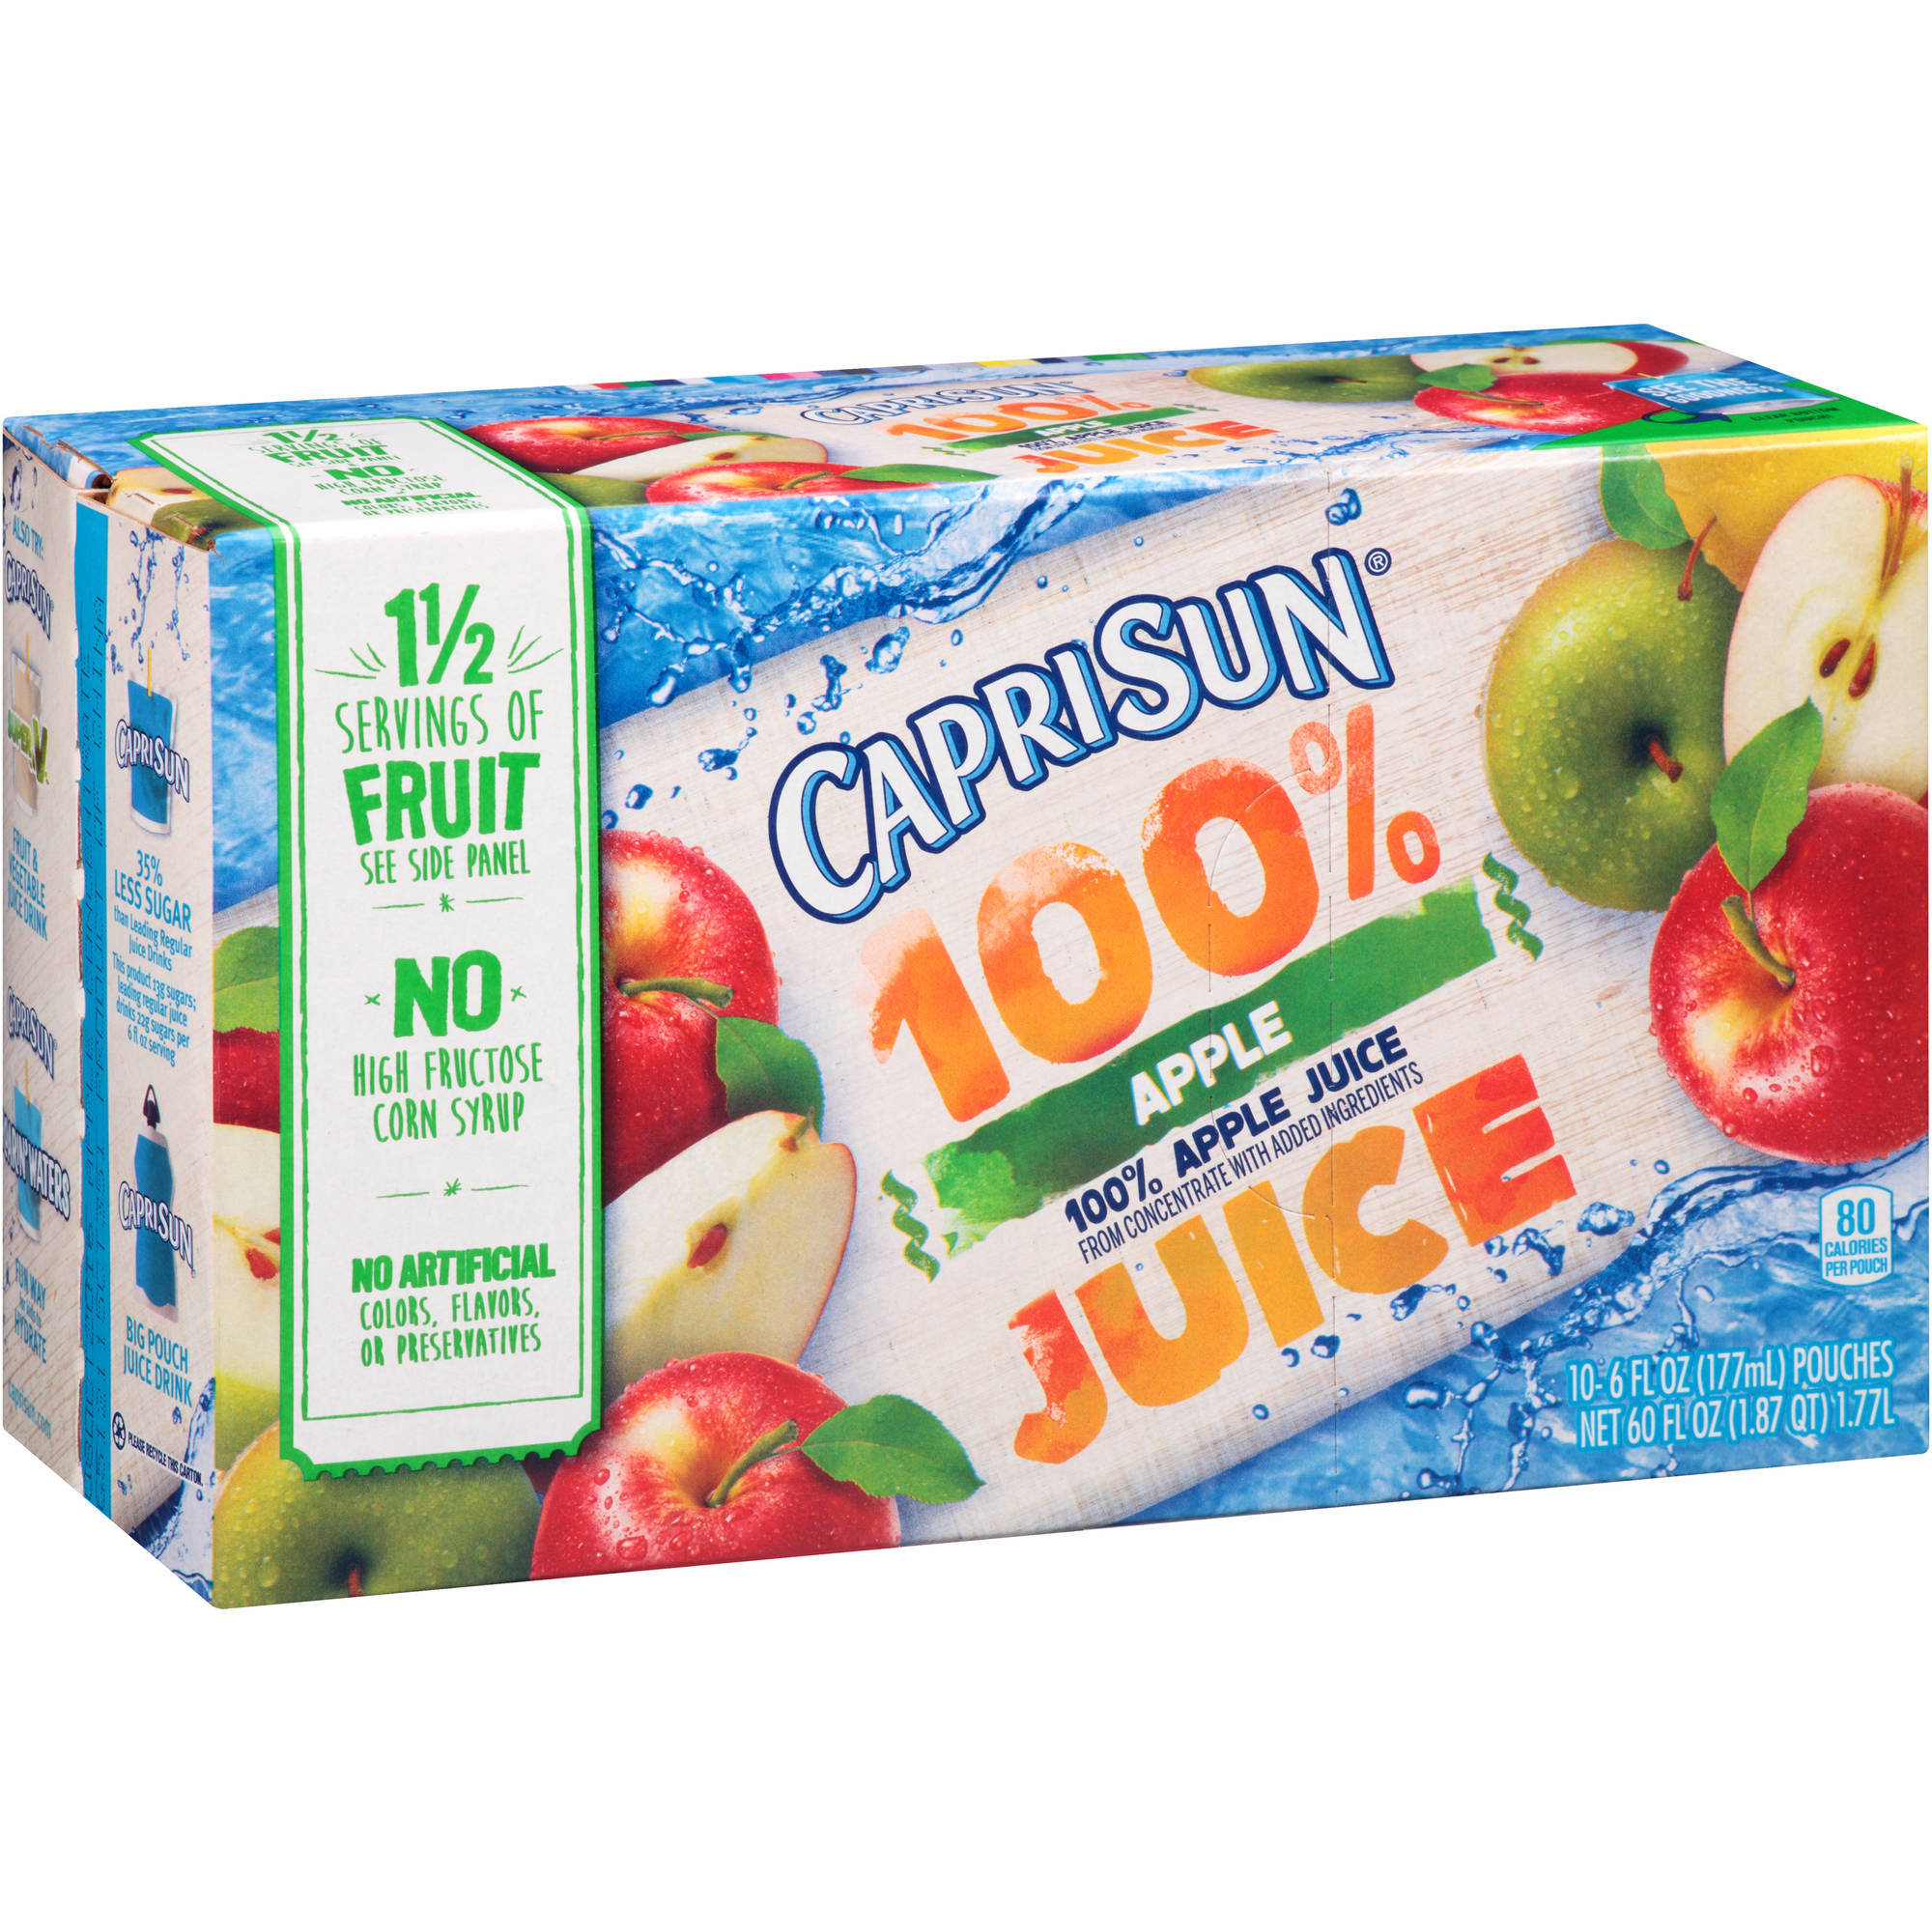 Capri Sun 100% Apple Juice, 6 fl oz, 10 count